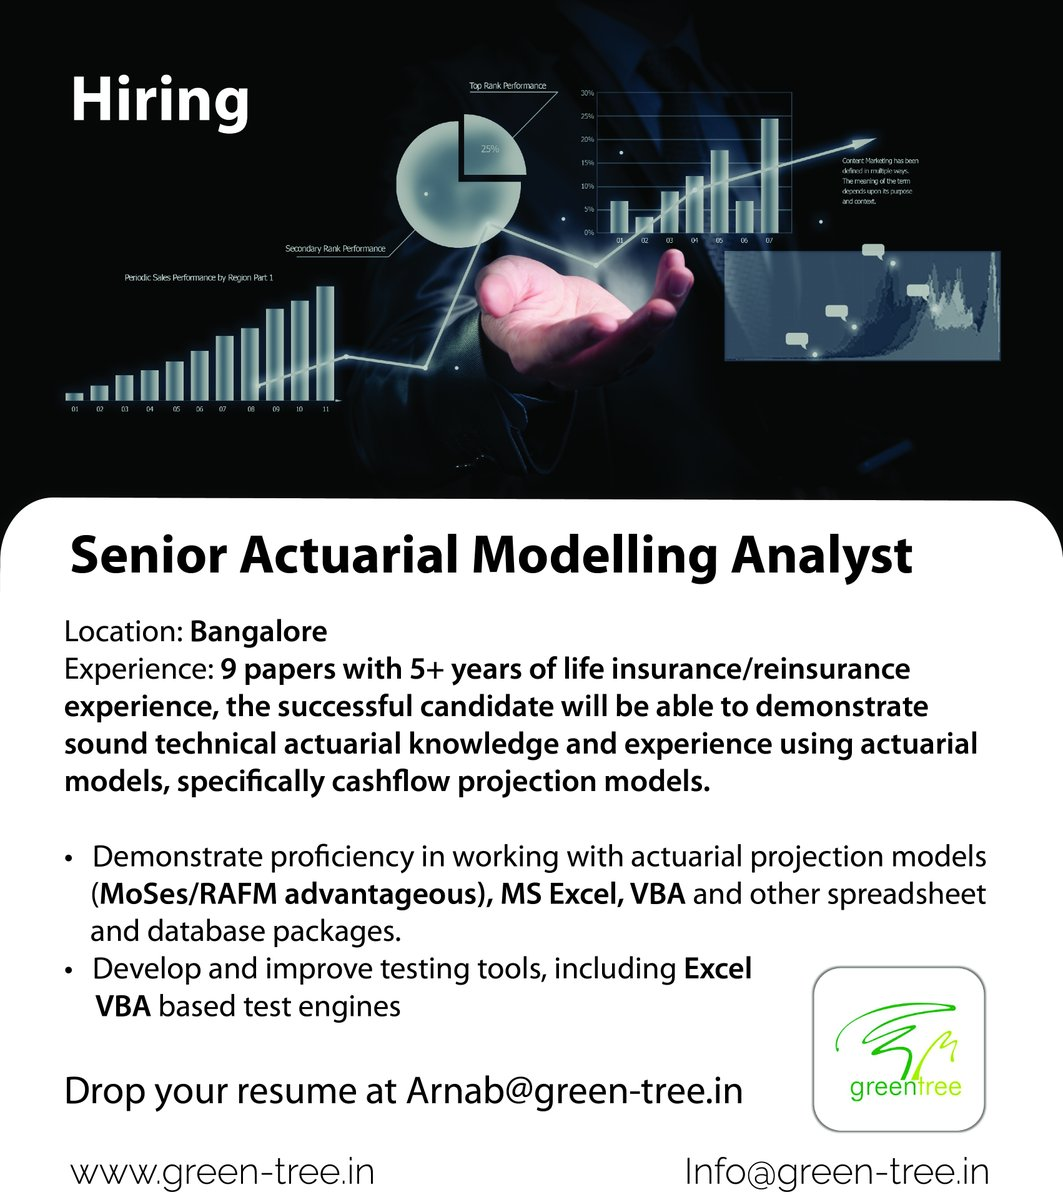 #Wearehiring Senior Actuarial Modelling Analyst  👉Follow #Greentree for daily job updates!  #actuaryjobs #lifeactuarial #riskmanagement #actuarialjobs #actuarialscience #actuariat #capitalmodeling #valuation #insuranceclaim #bankingandfinance #dataanalytics #spss https://t.co/qoI8ZcbIio